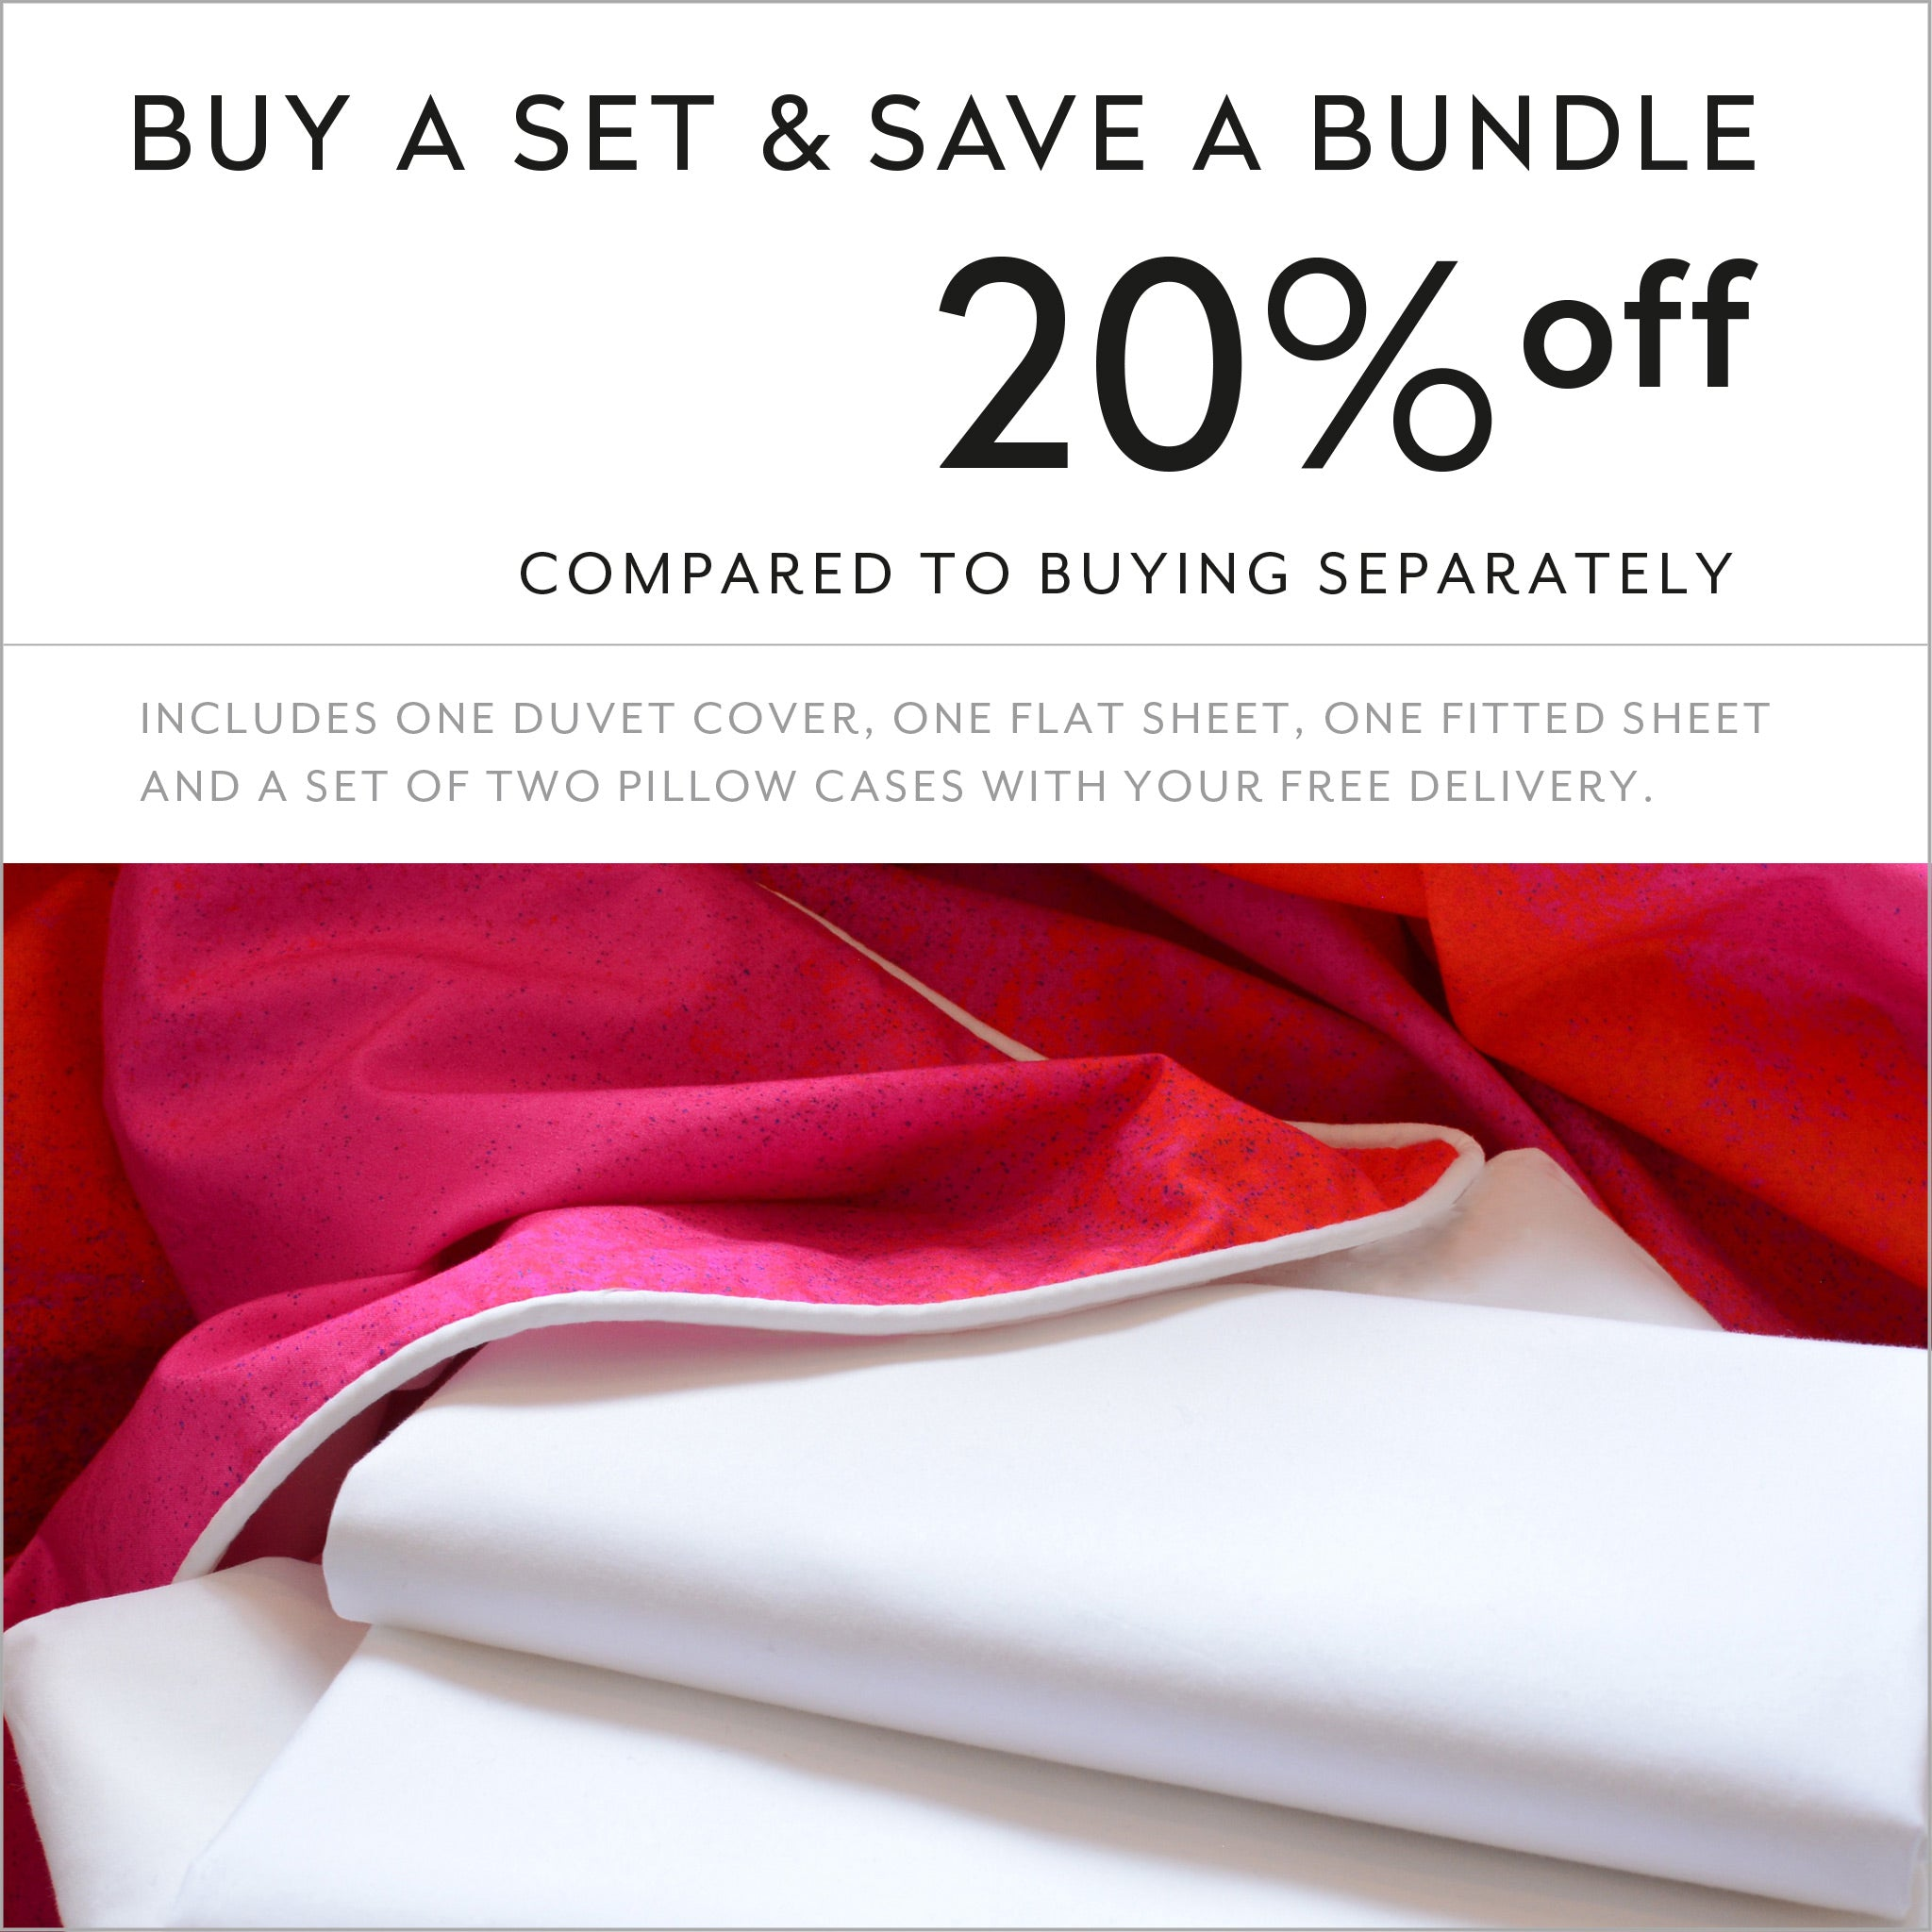 Buy a set and save 20% compared to buying separately cotton sheets and duvet cover design Apsara Dance